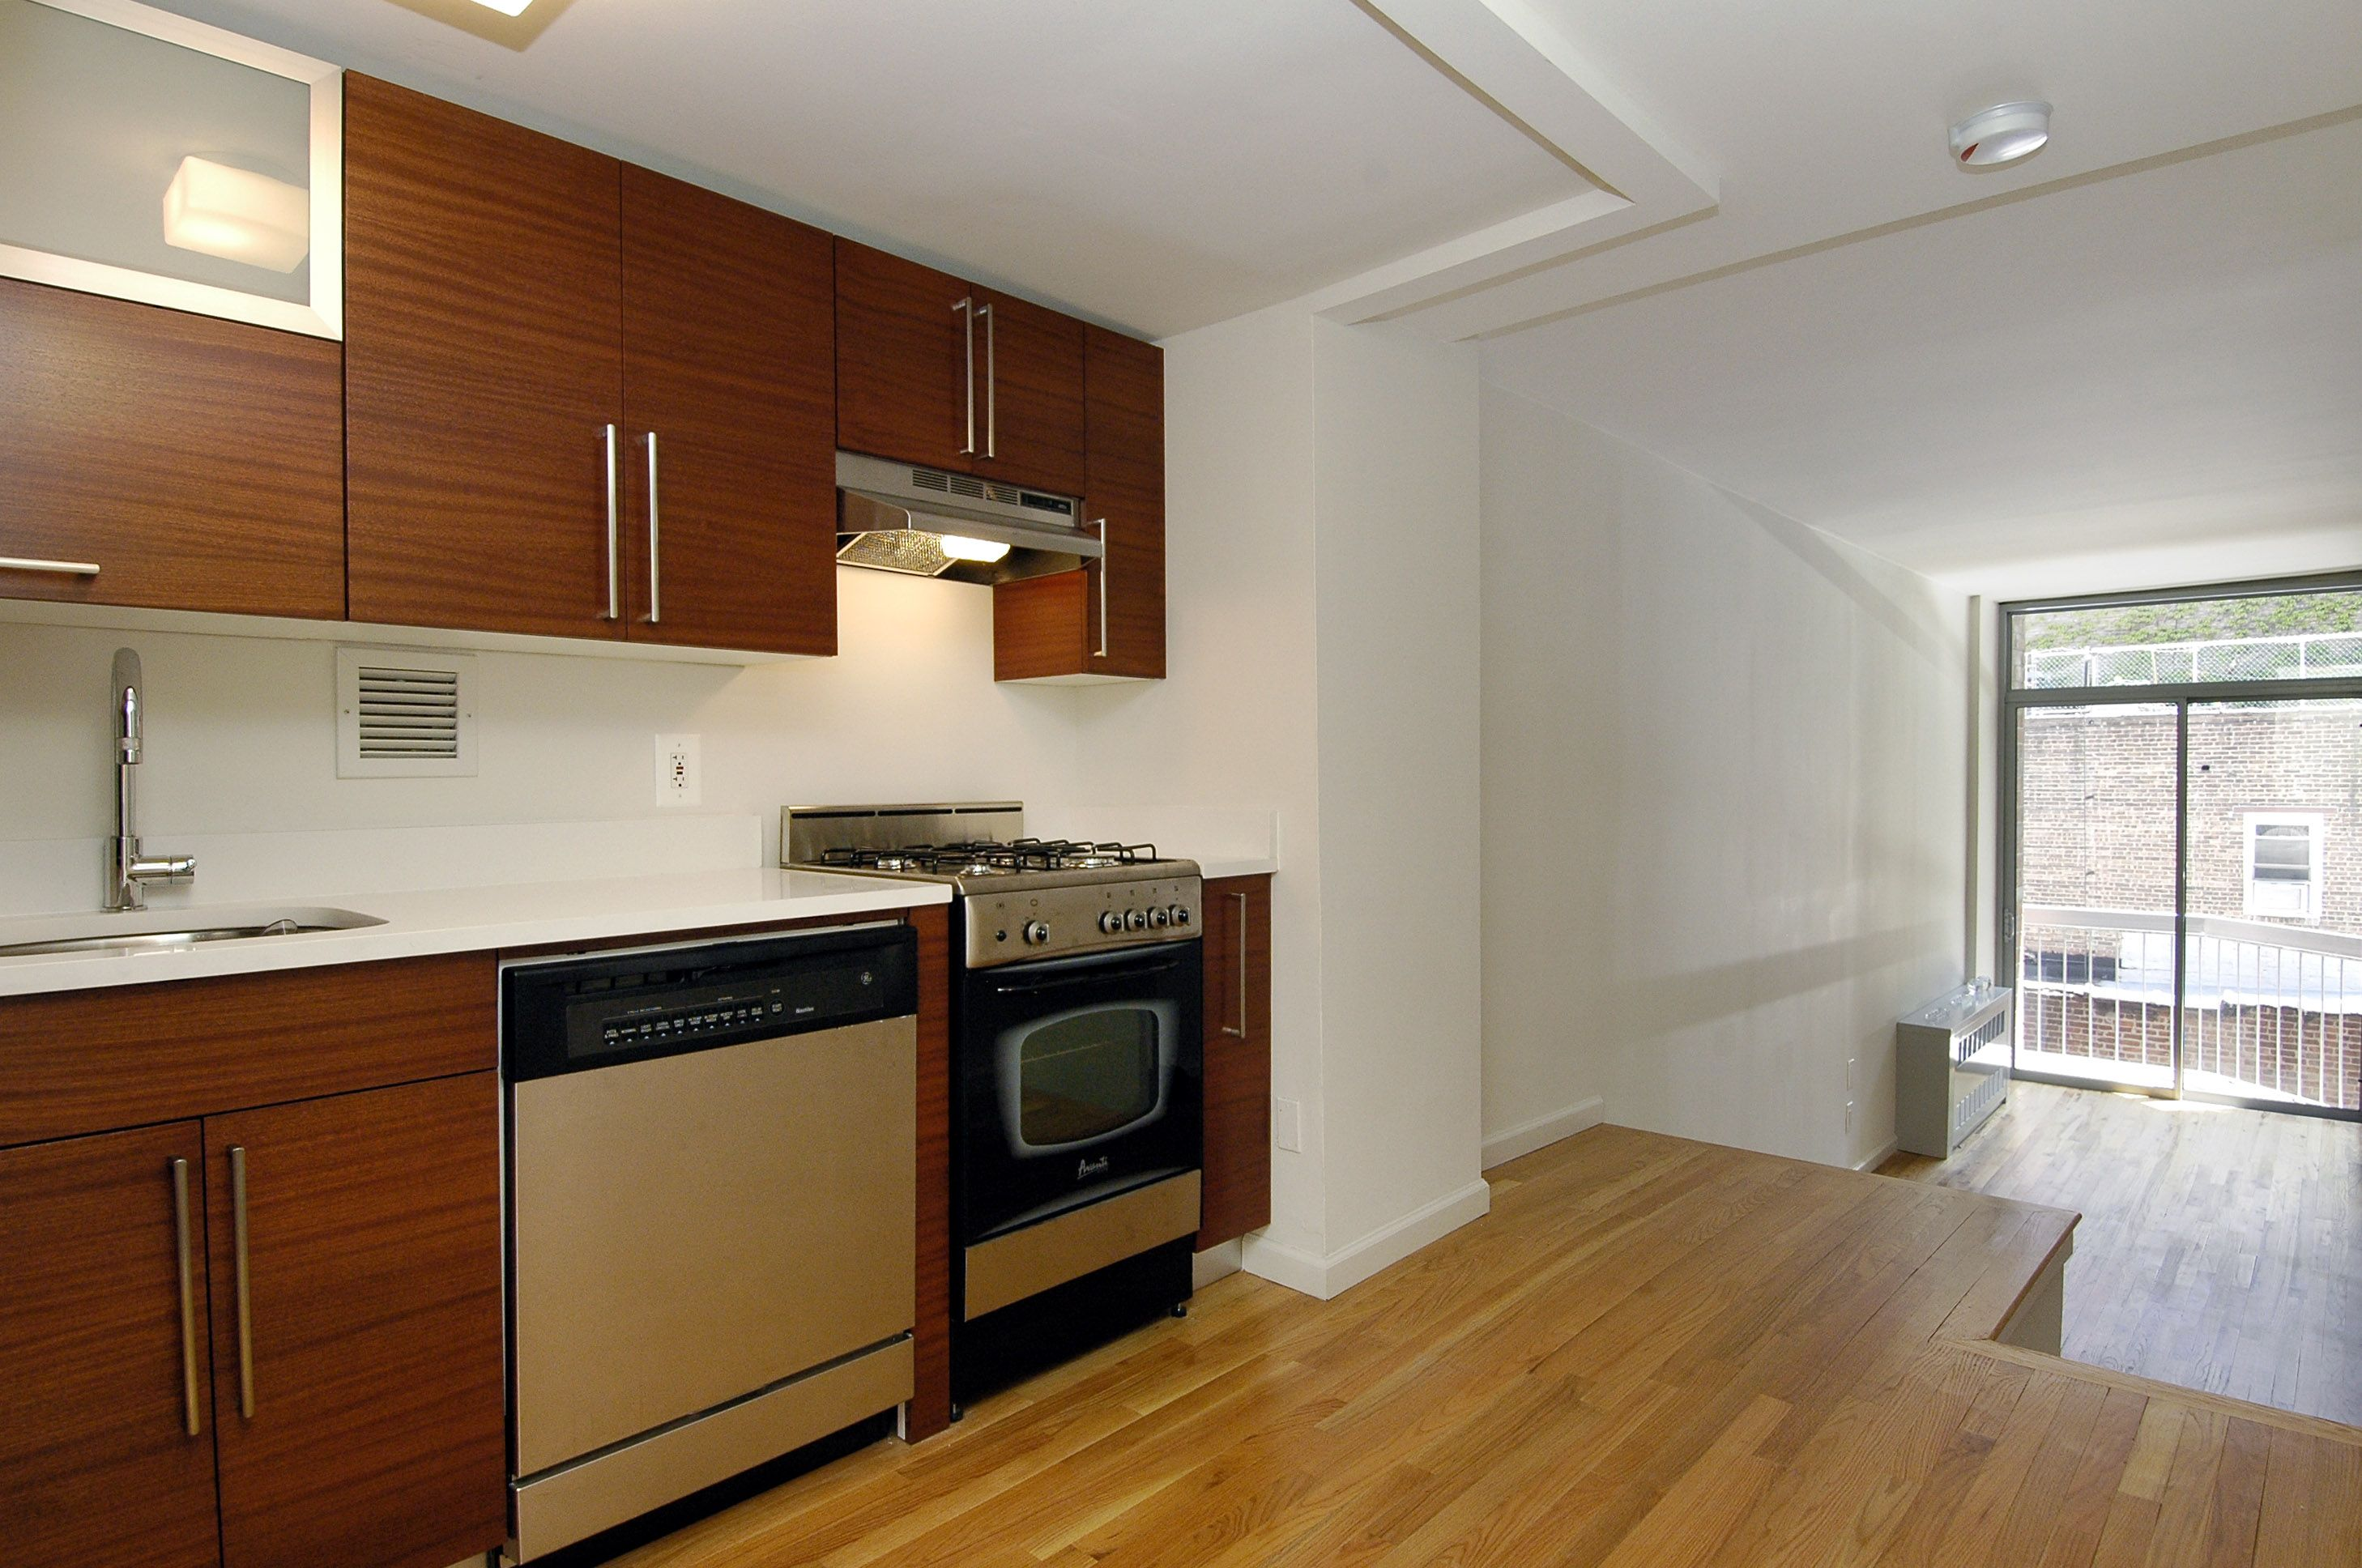 184 Thompson 2B for sale in New York City, Greenwich Village